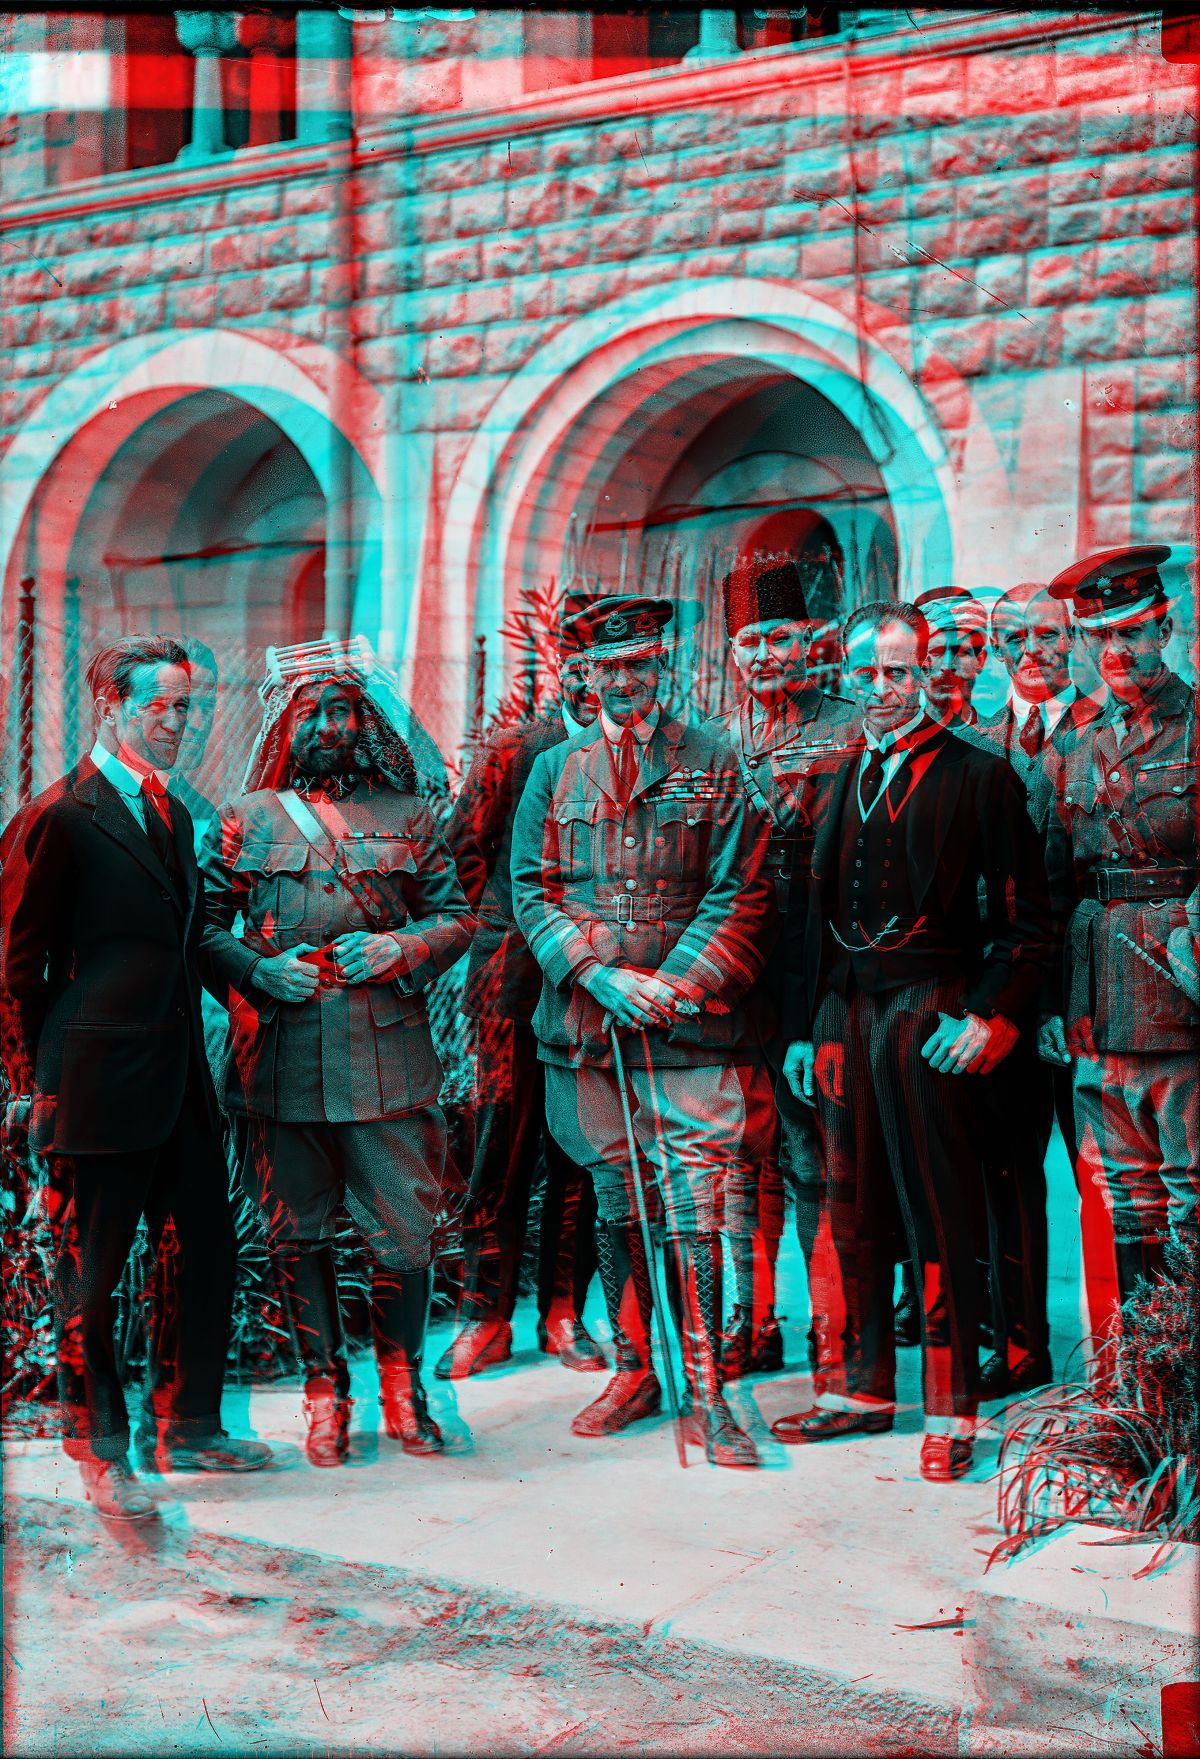 Lawrence anaglyph 2